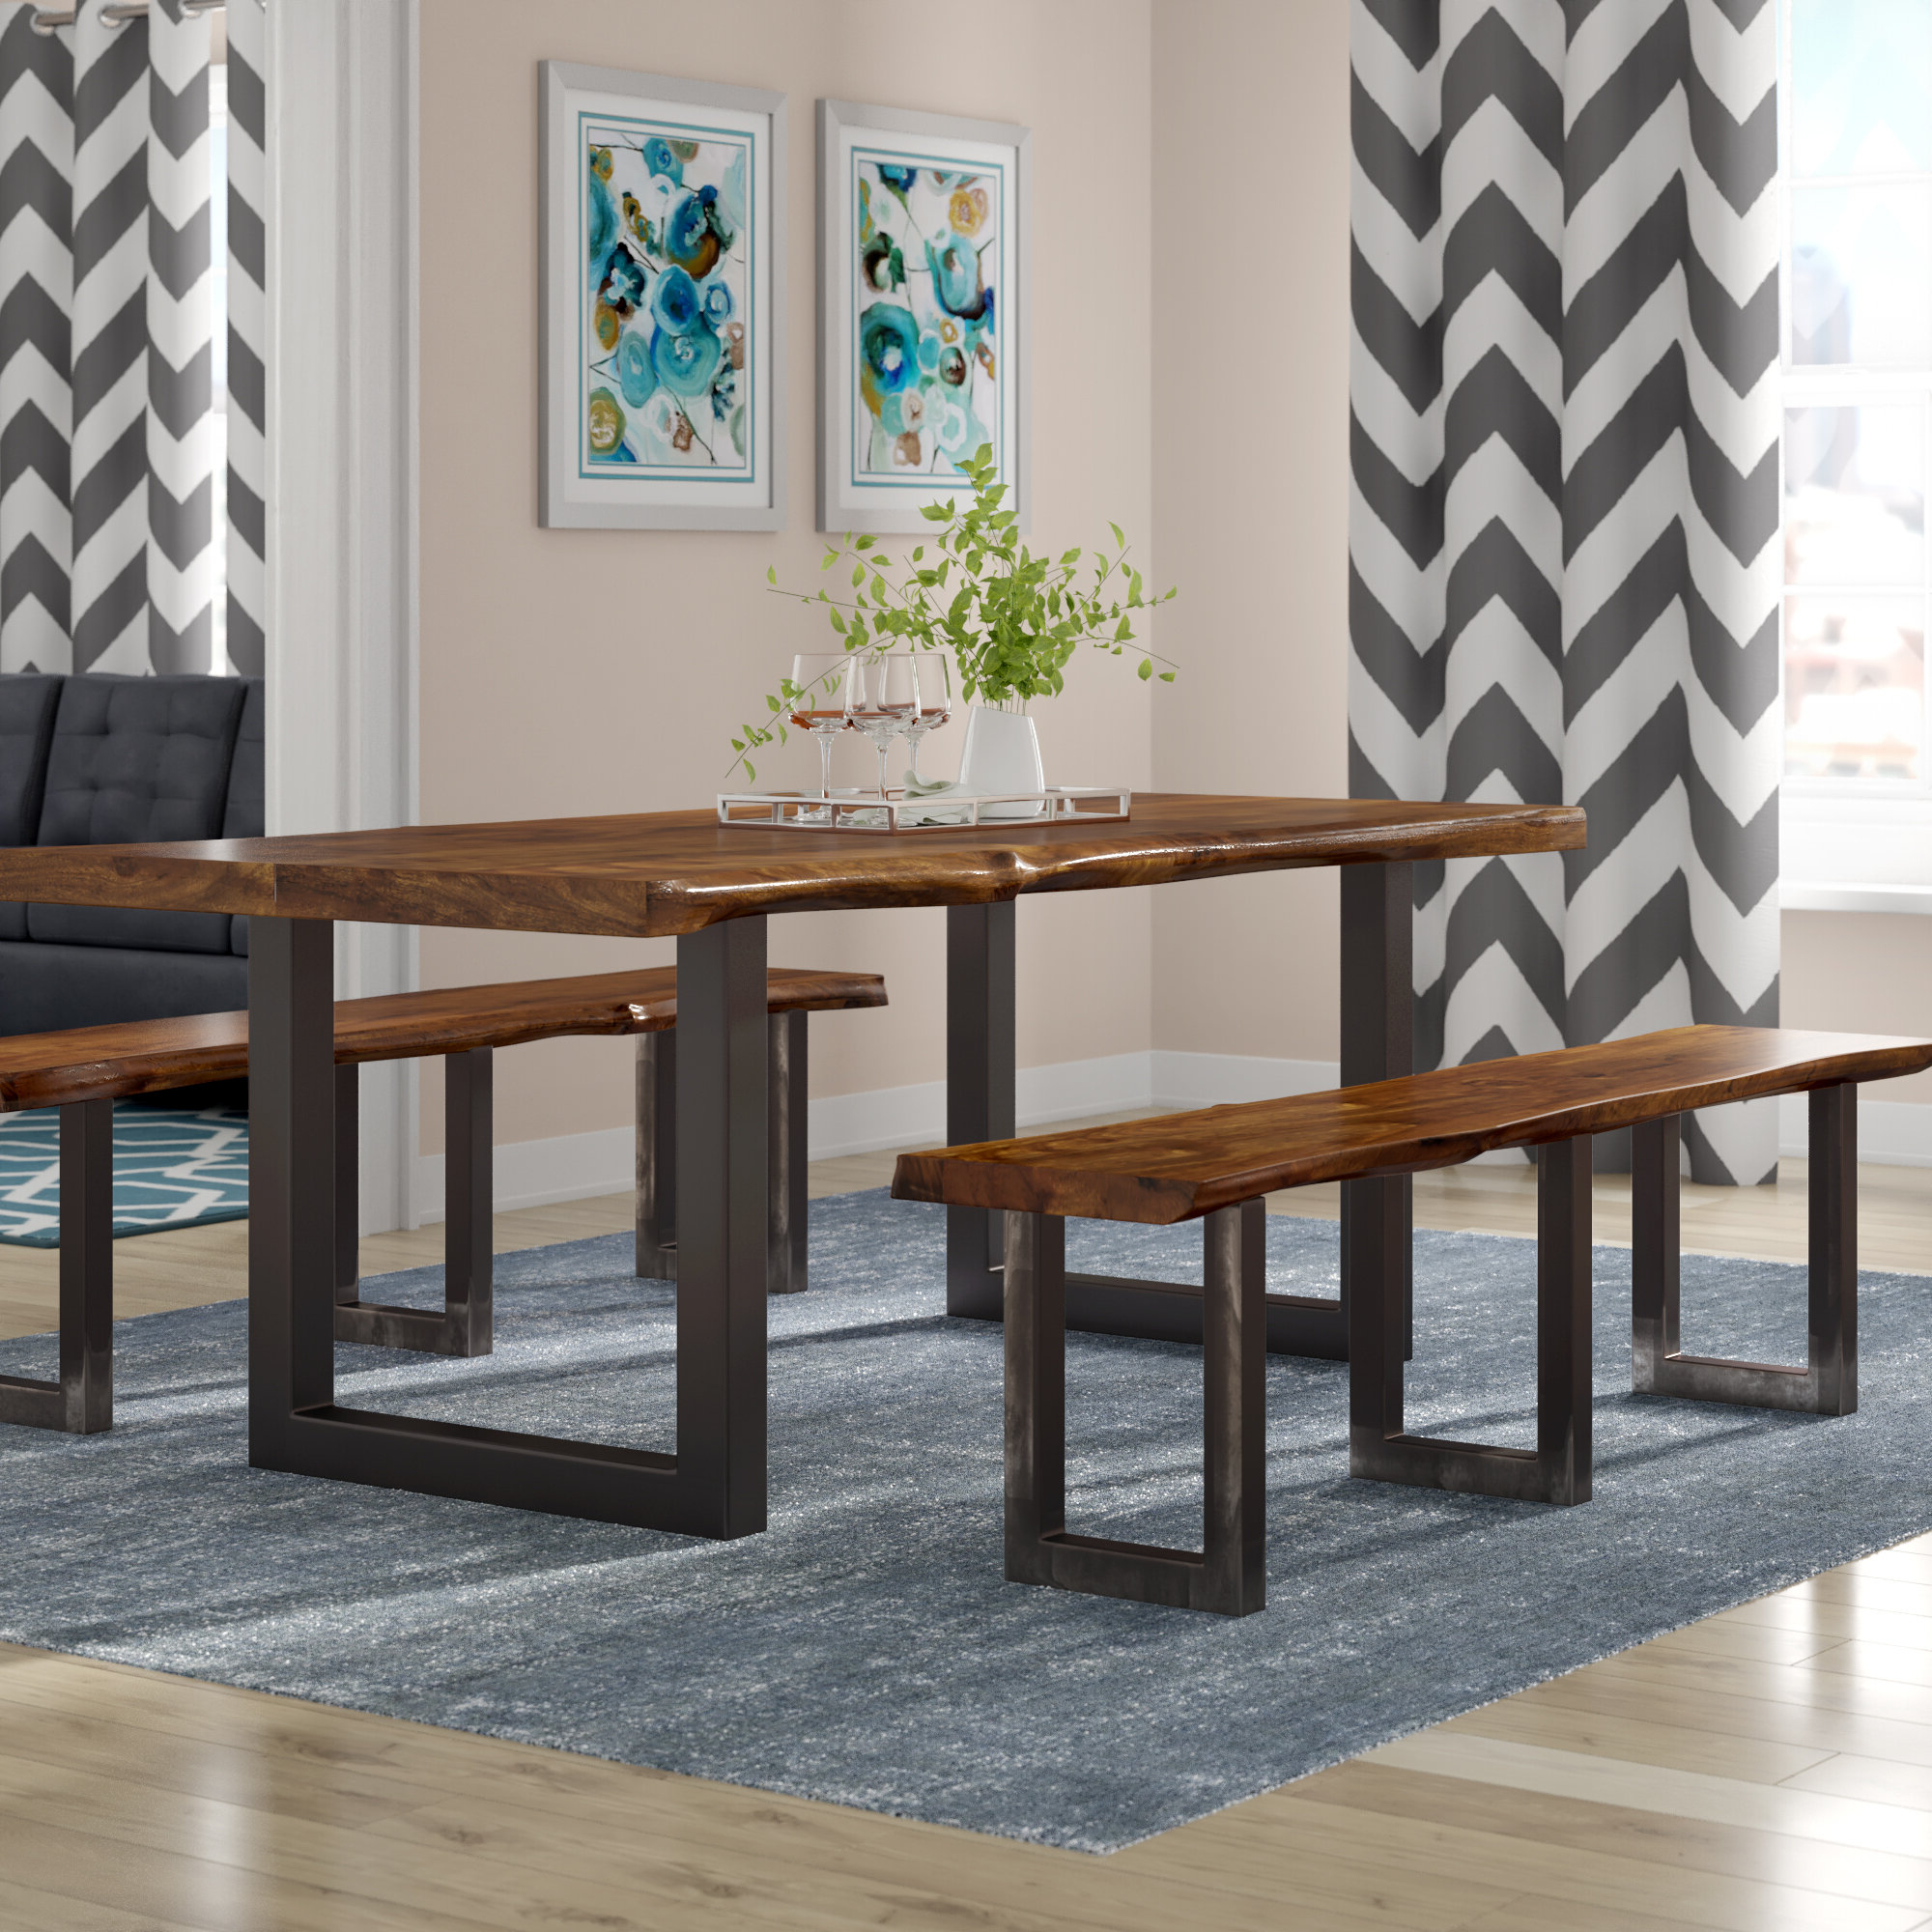 Wayfair For Preferred Valladares 3 Piece Pub Table Sets (View 13 of 25)